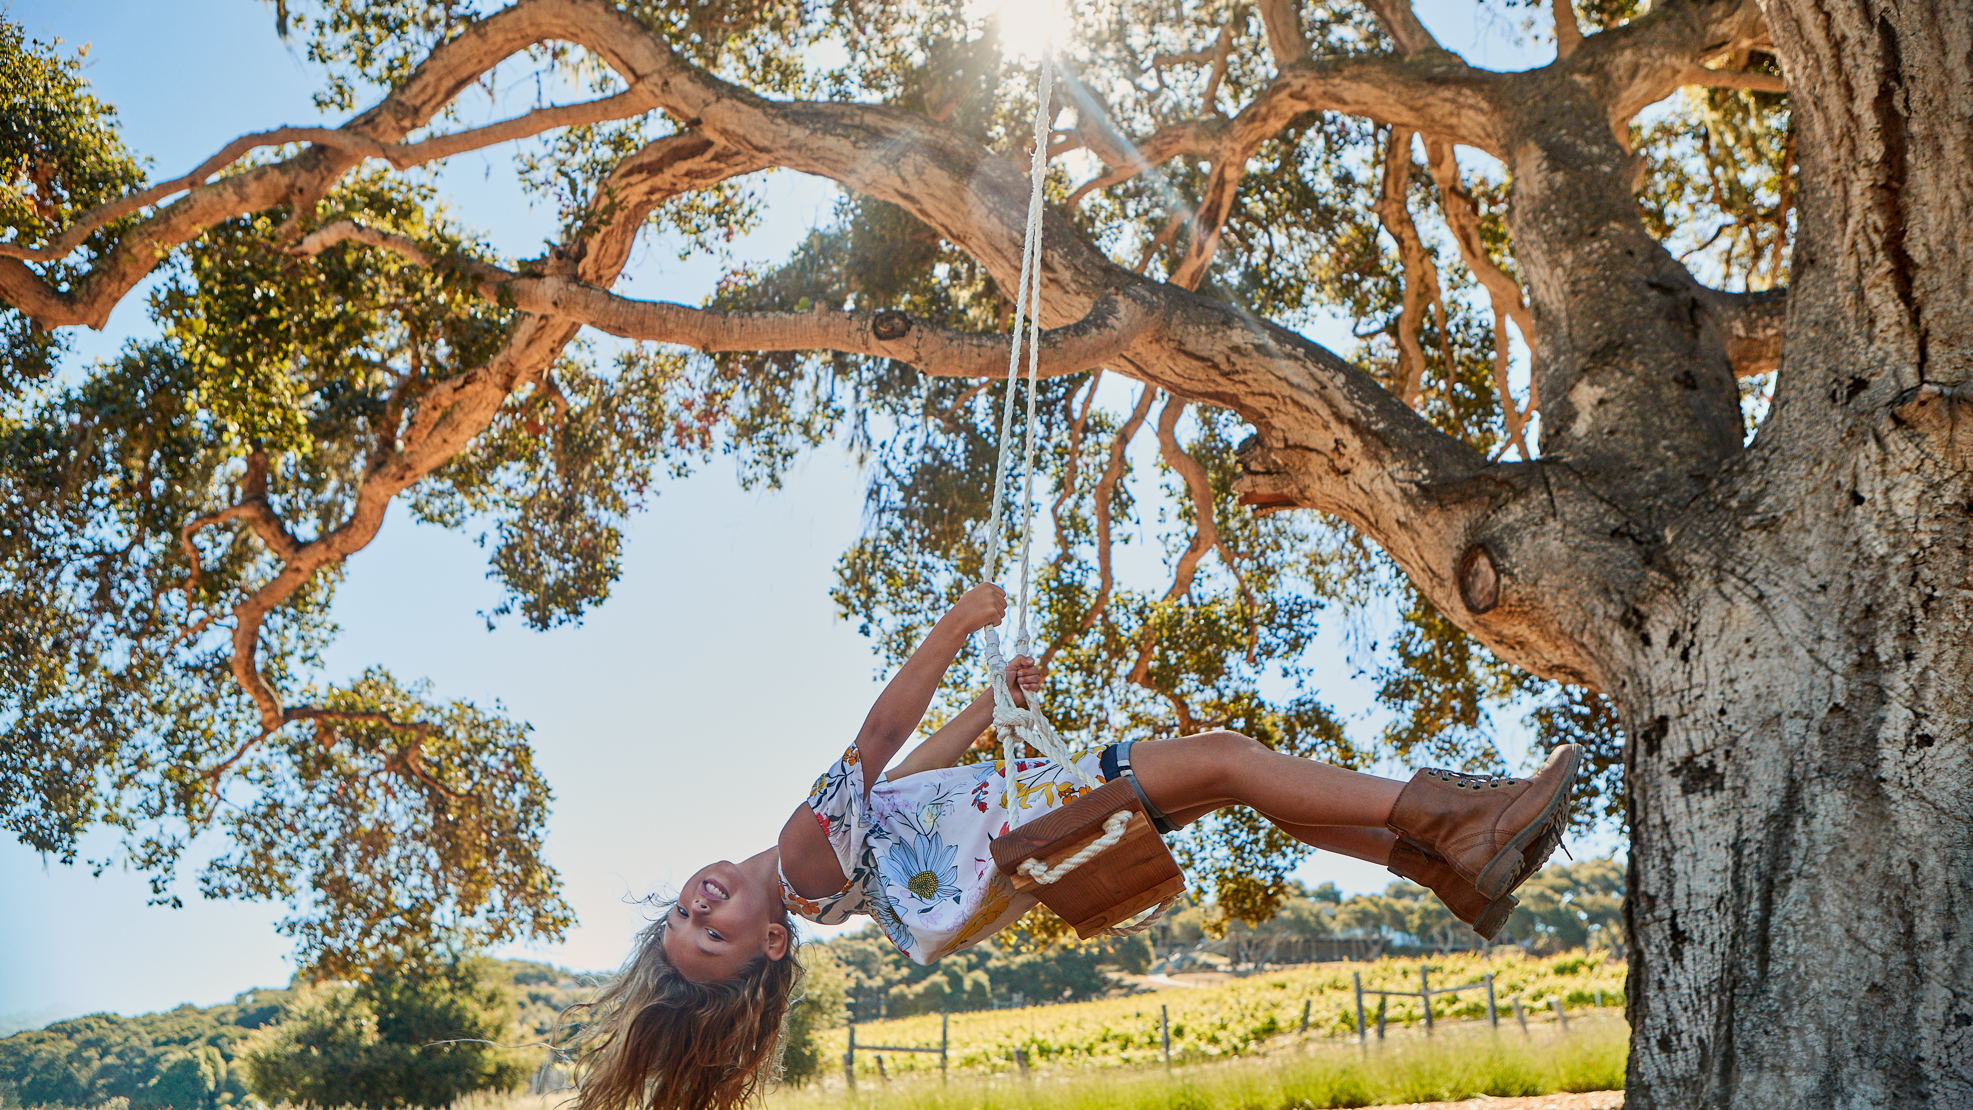 Carmel Valley Ranch_Lifestyle_Play_girl on swing_hair down_2296_GJ